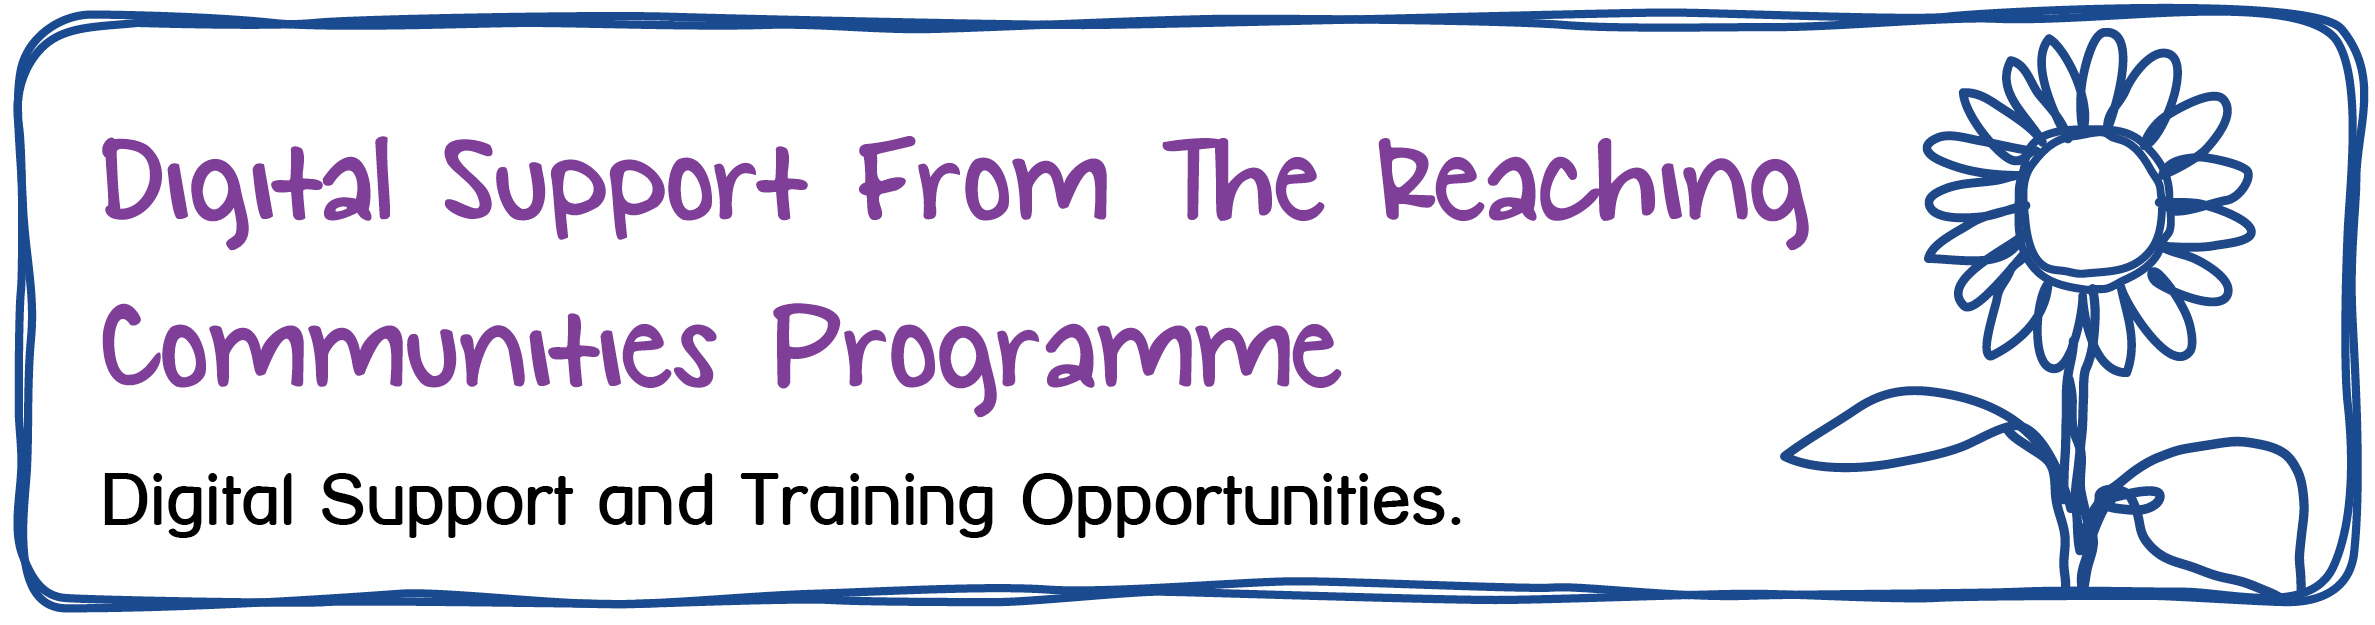 Digital Support From The Reaching Communities Programme. Digital Support and Training Opportunities.